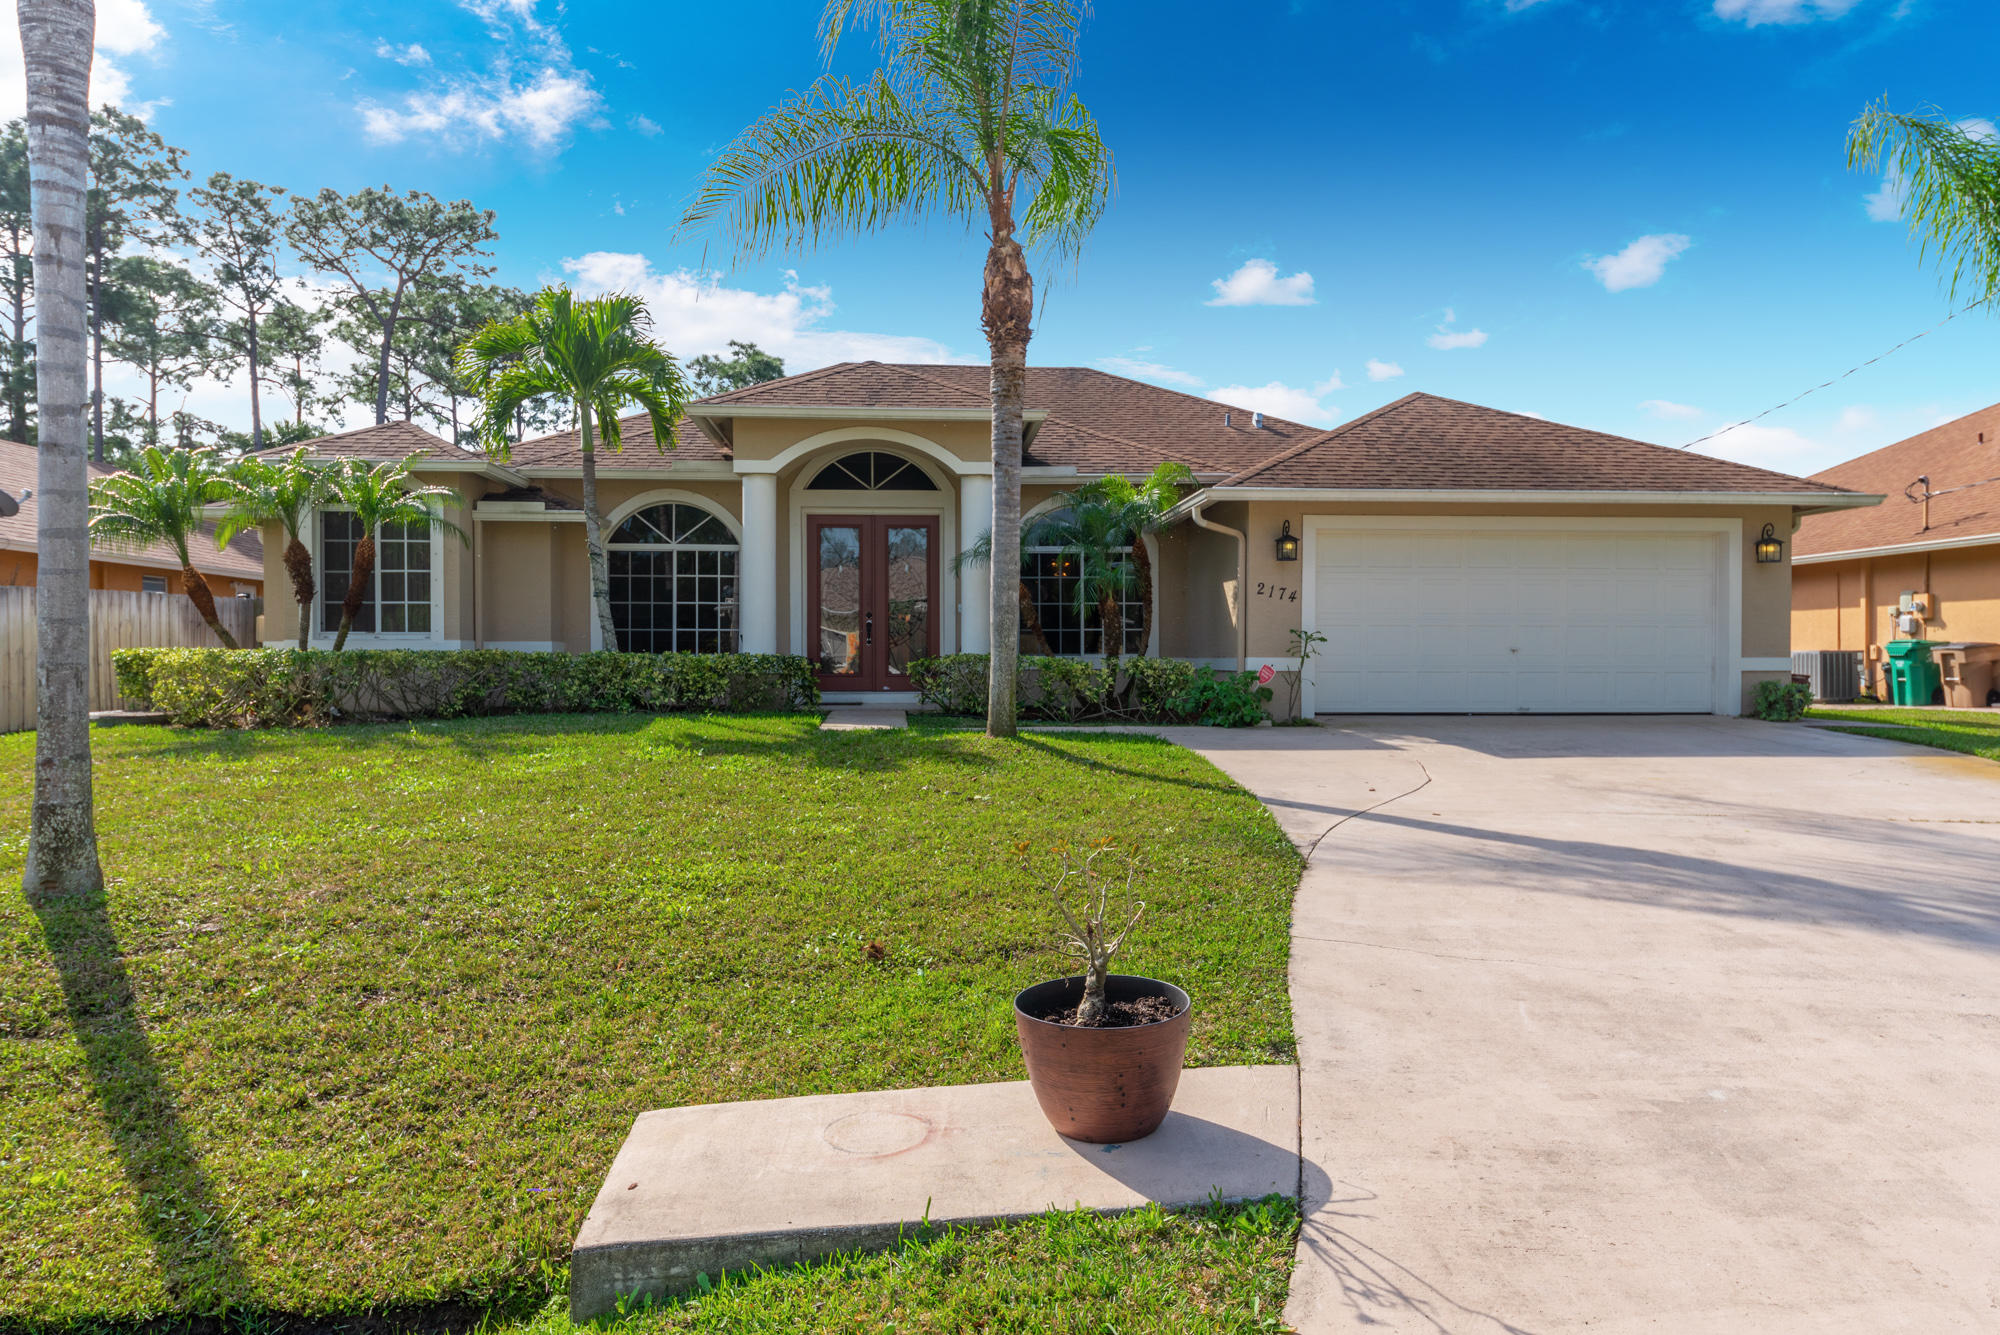 Home for sale in port st lucie section 7 Port Saint Lucie Florida